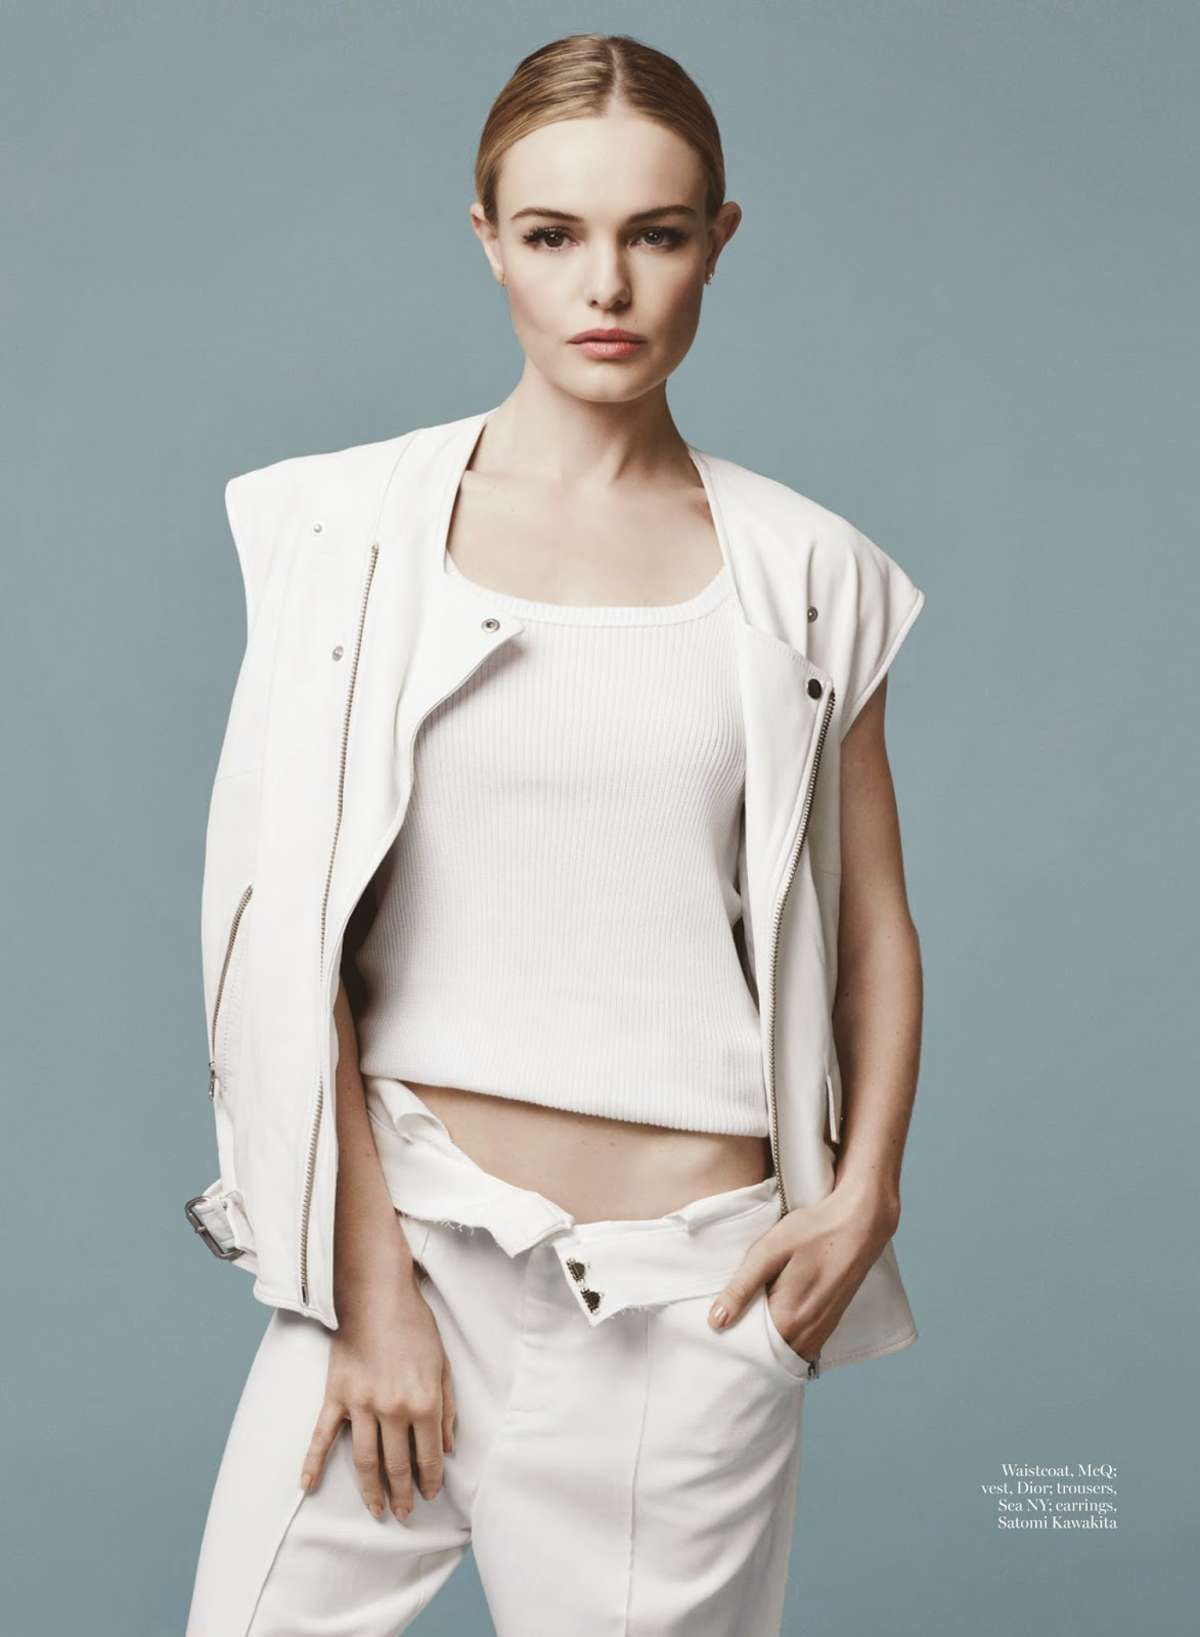 KATE BOSWORTH in Marie Claire Magazine, March 2015 Issue - HawtCelebs ... Kate Bosworth